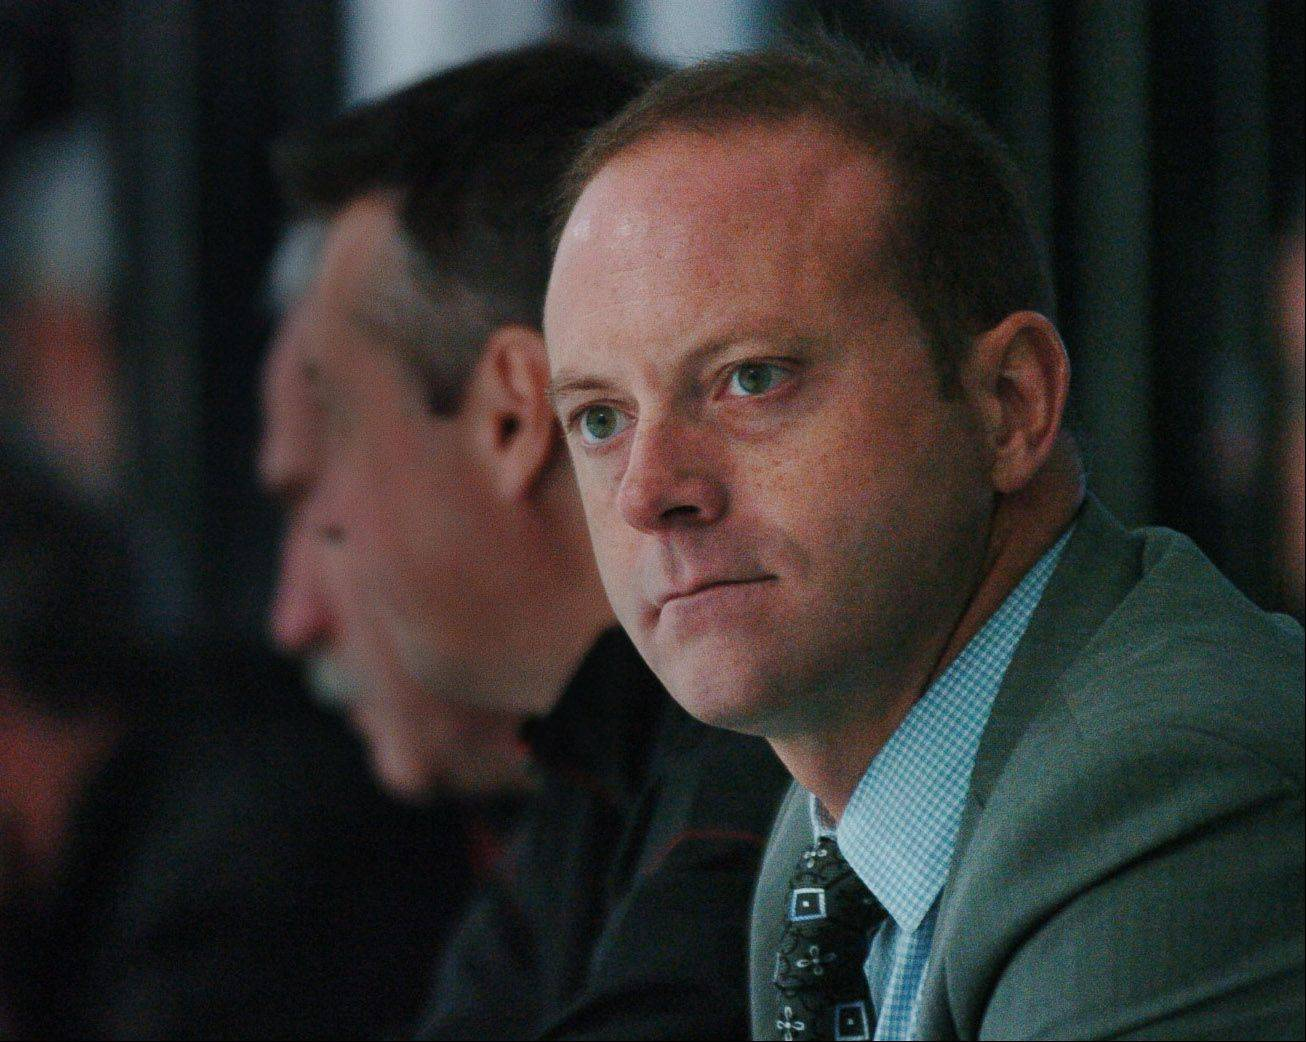 "Blackhawks general manager Stan Bowman said Wednesday that he considers this week's NHL draft to be a good one. ""We have a chance to cash in on a strong group this year,"" he said."